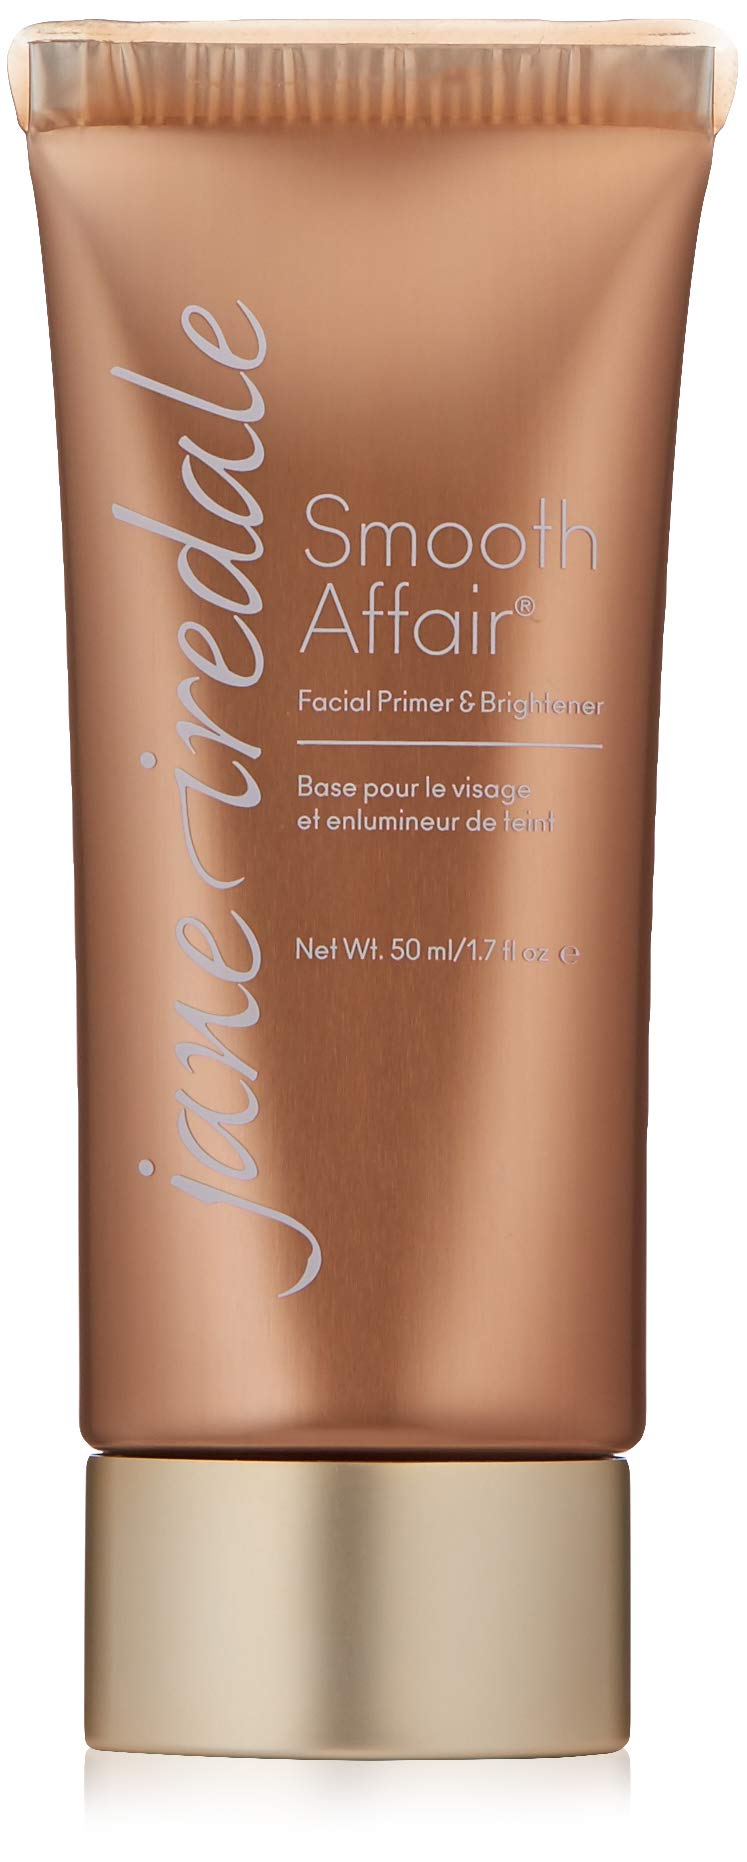 jane iredale Smooth Affair Facial Primer and Brightener, 1.7 Fl Oz by jane iredale